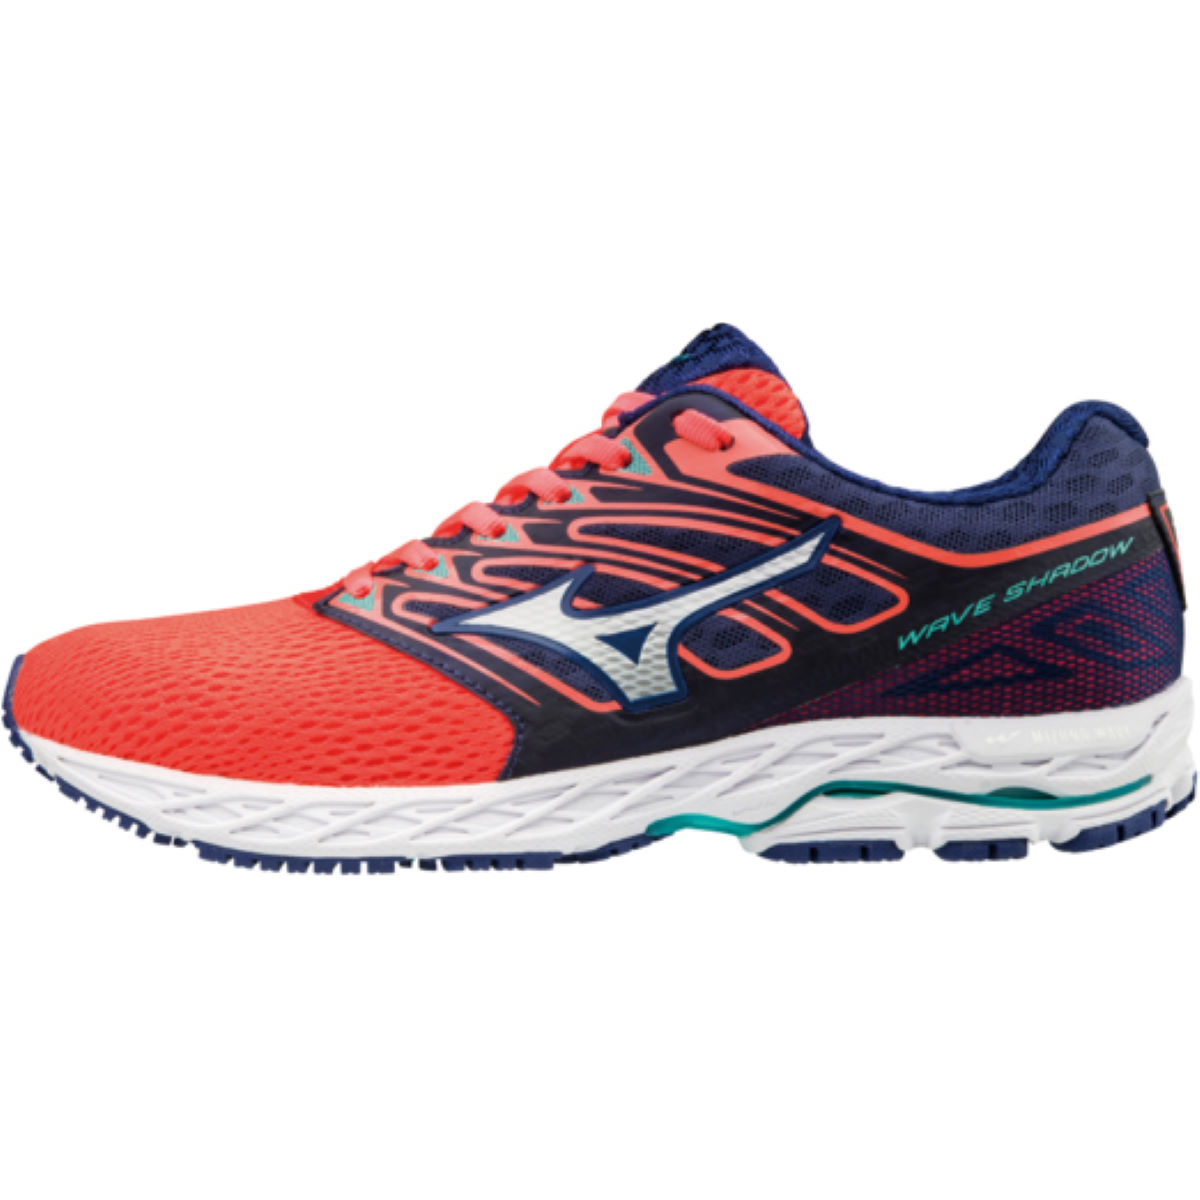 Chaussures Femme Mizuno Wave Shadow - UK 4 Fiery Coral / White